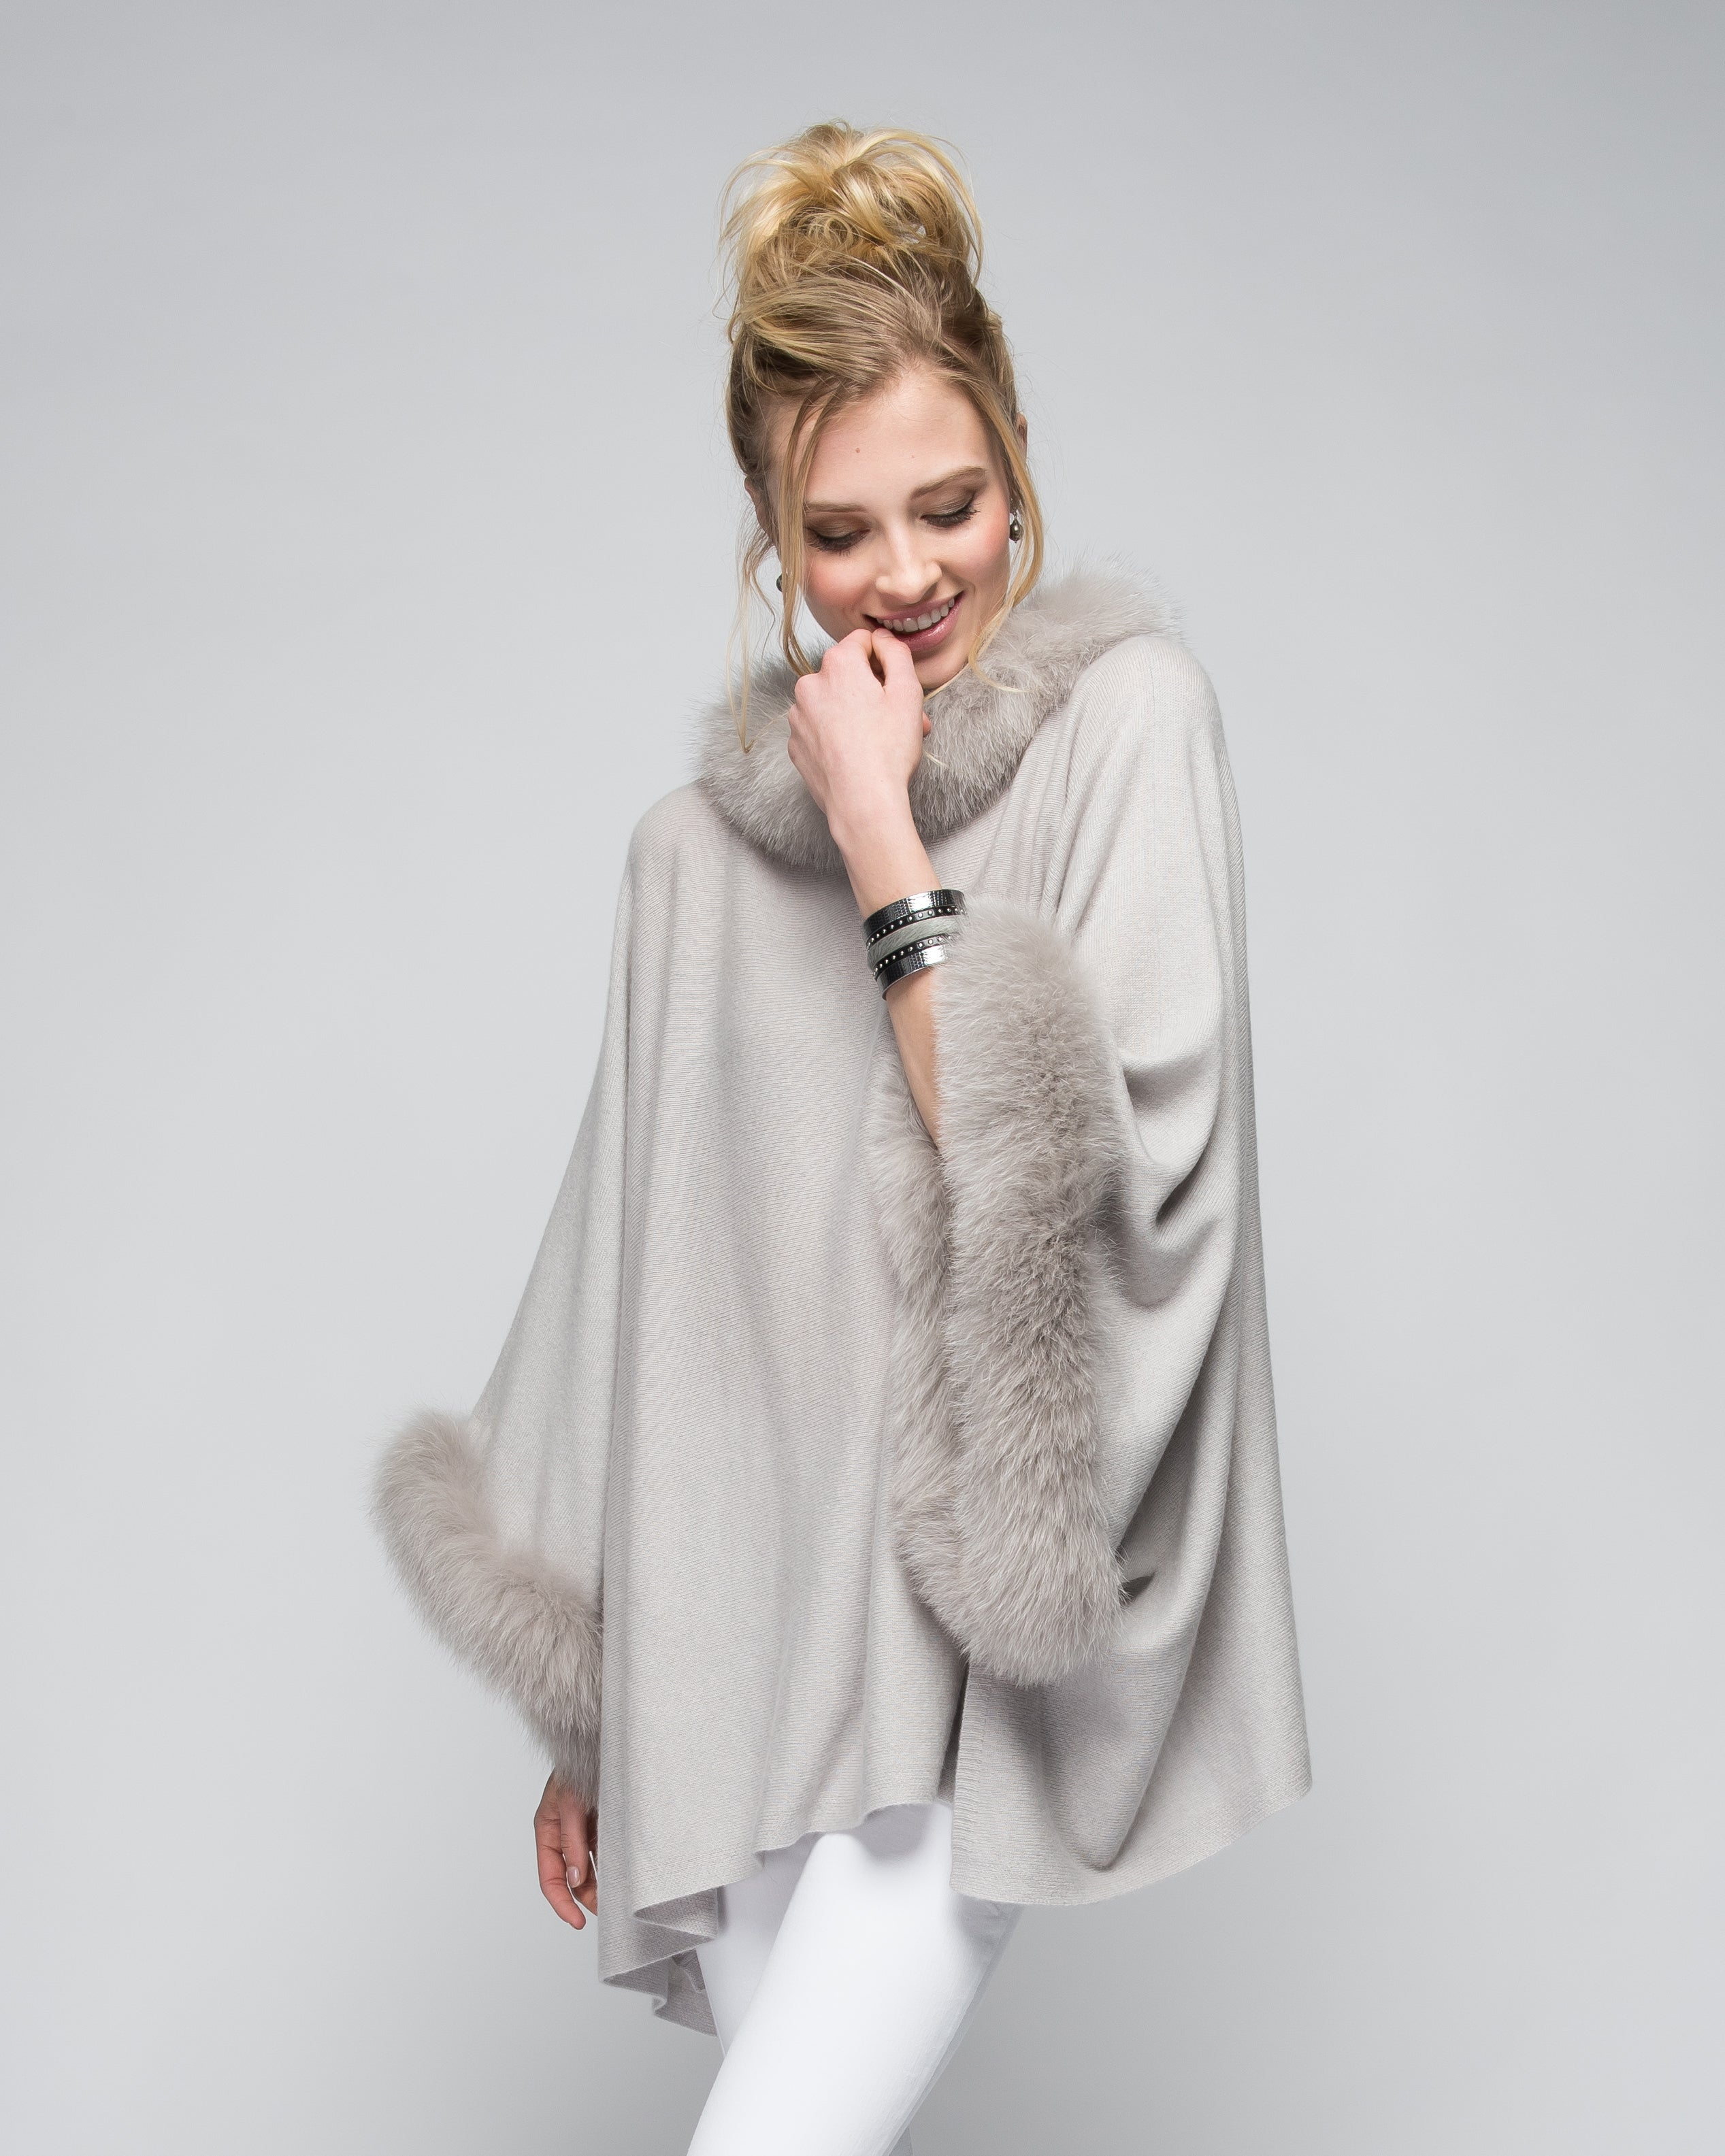 Cashmere Poncho with Full Fox Fur Trim in Dove Gray